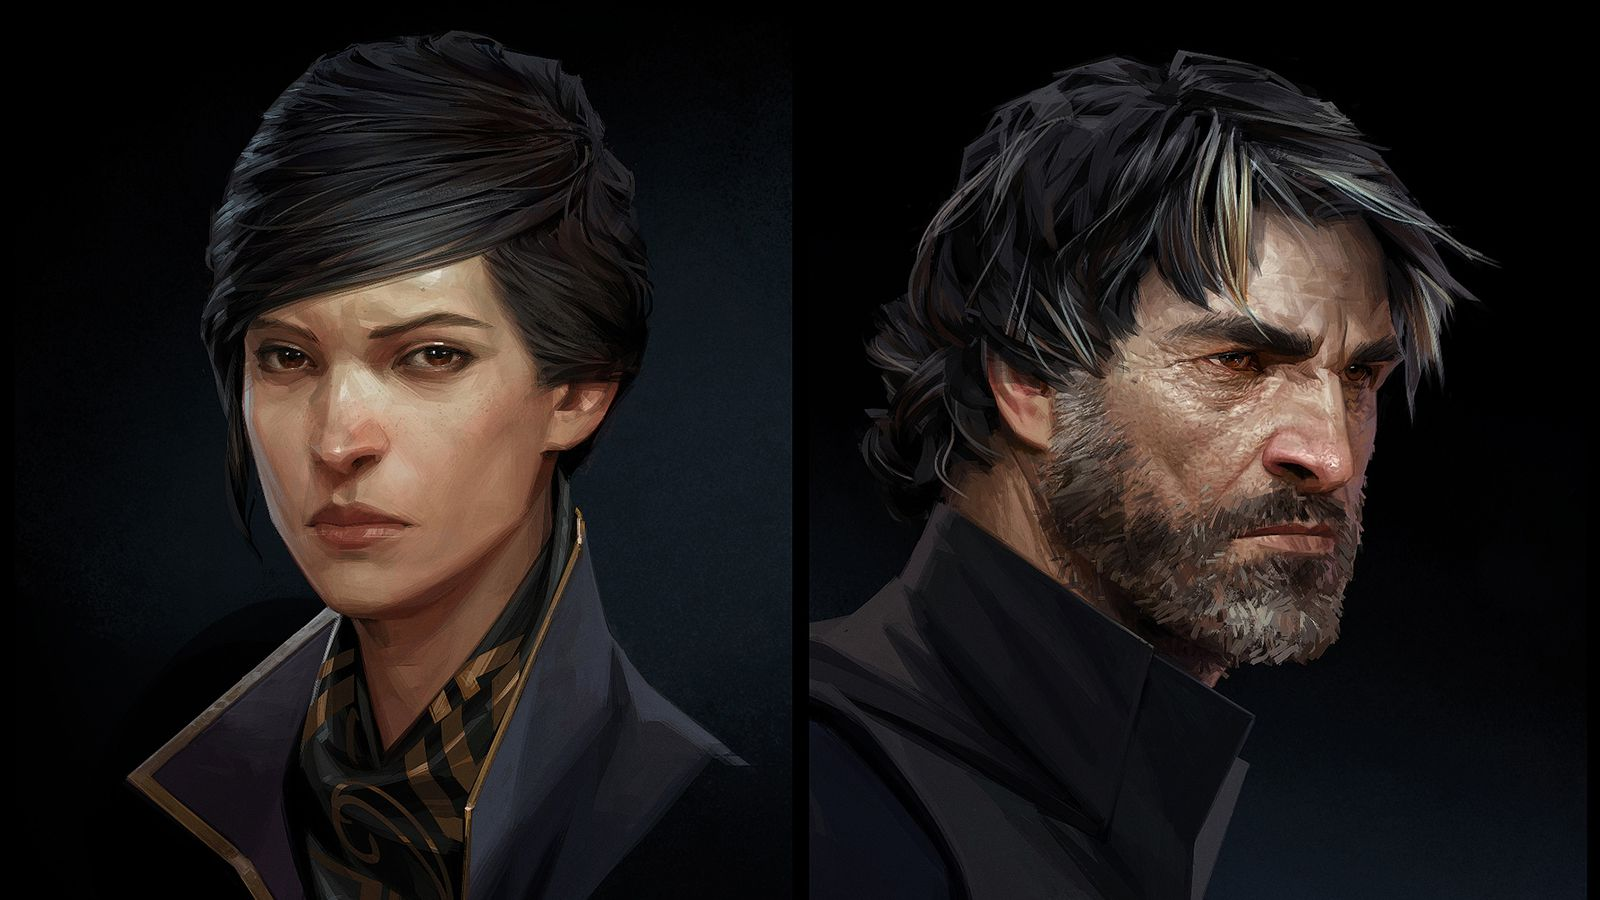 dishonored-2-emily-corvo-concept-art_1920.0.jpg